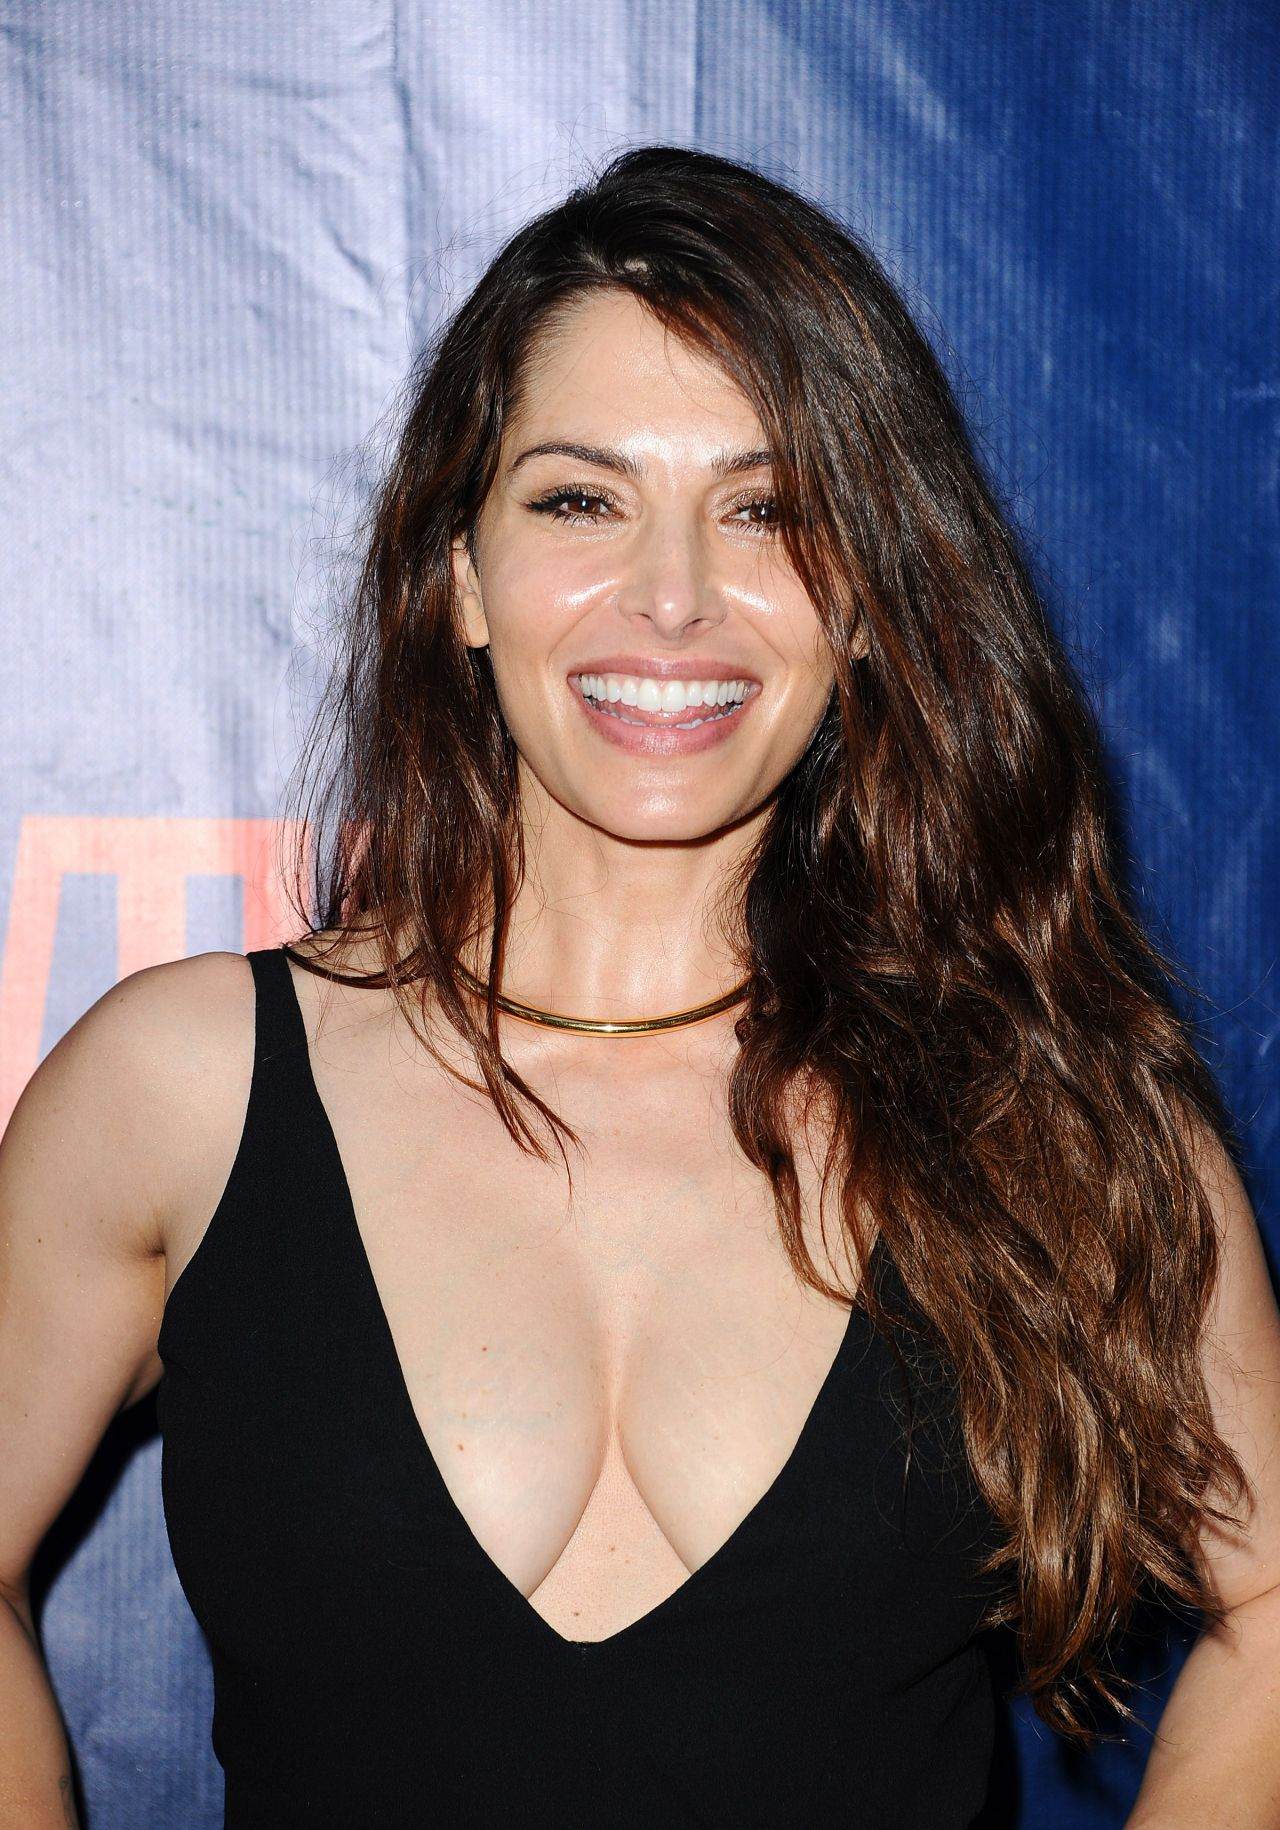 Cleavage Sarah Shahi nudes (36 foto and video), Sexy, Fappening, Feet, lingerie 2019